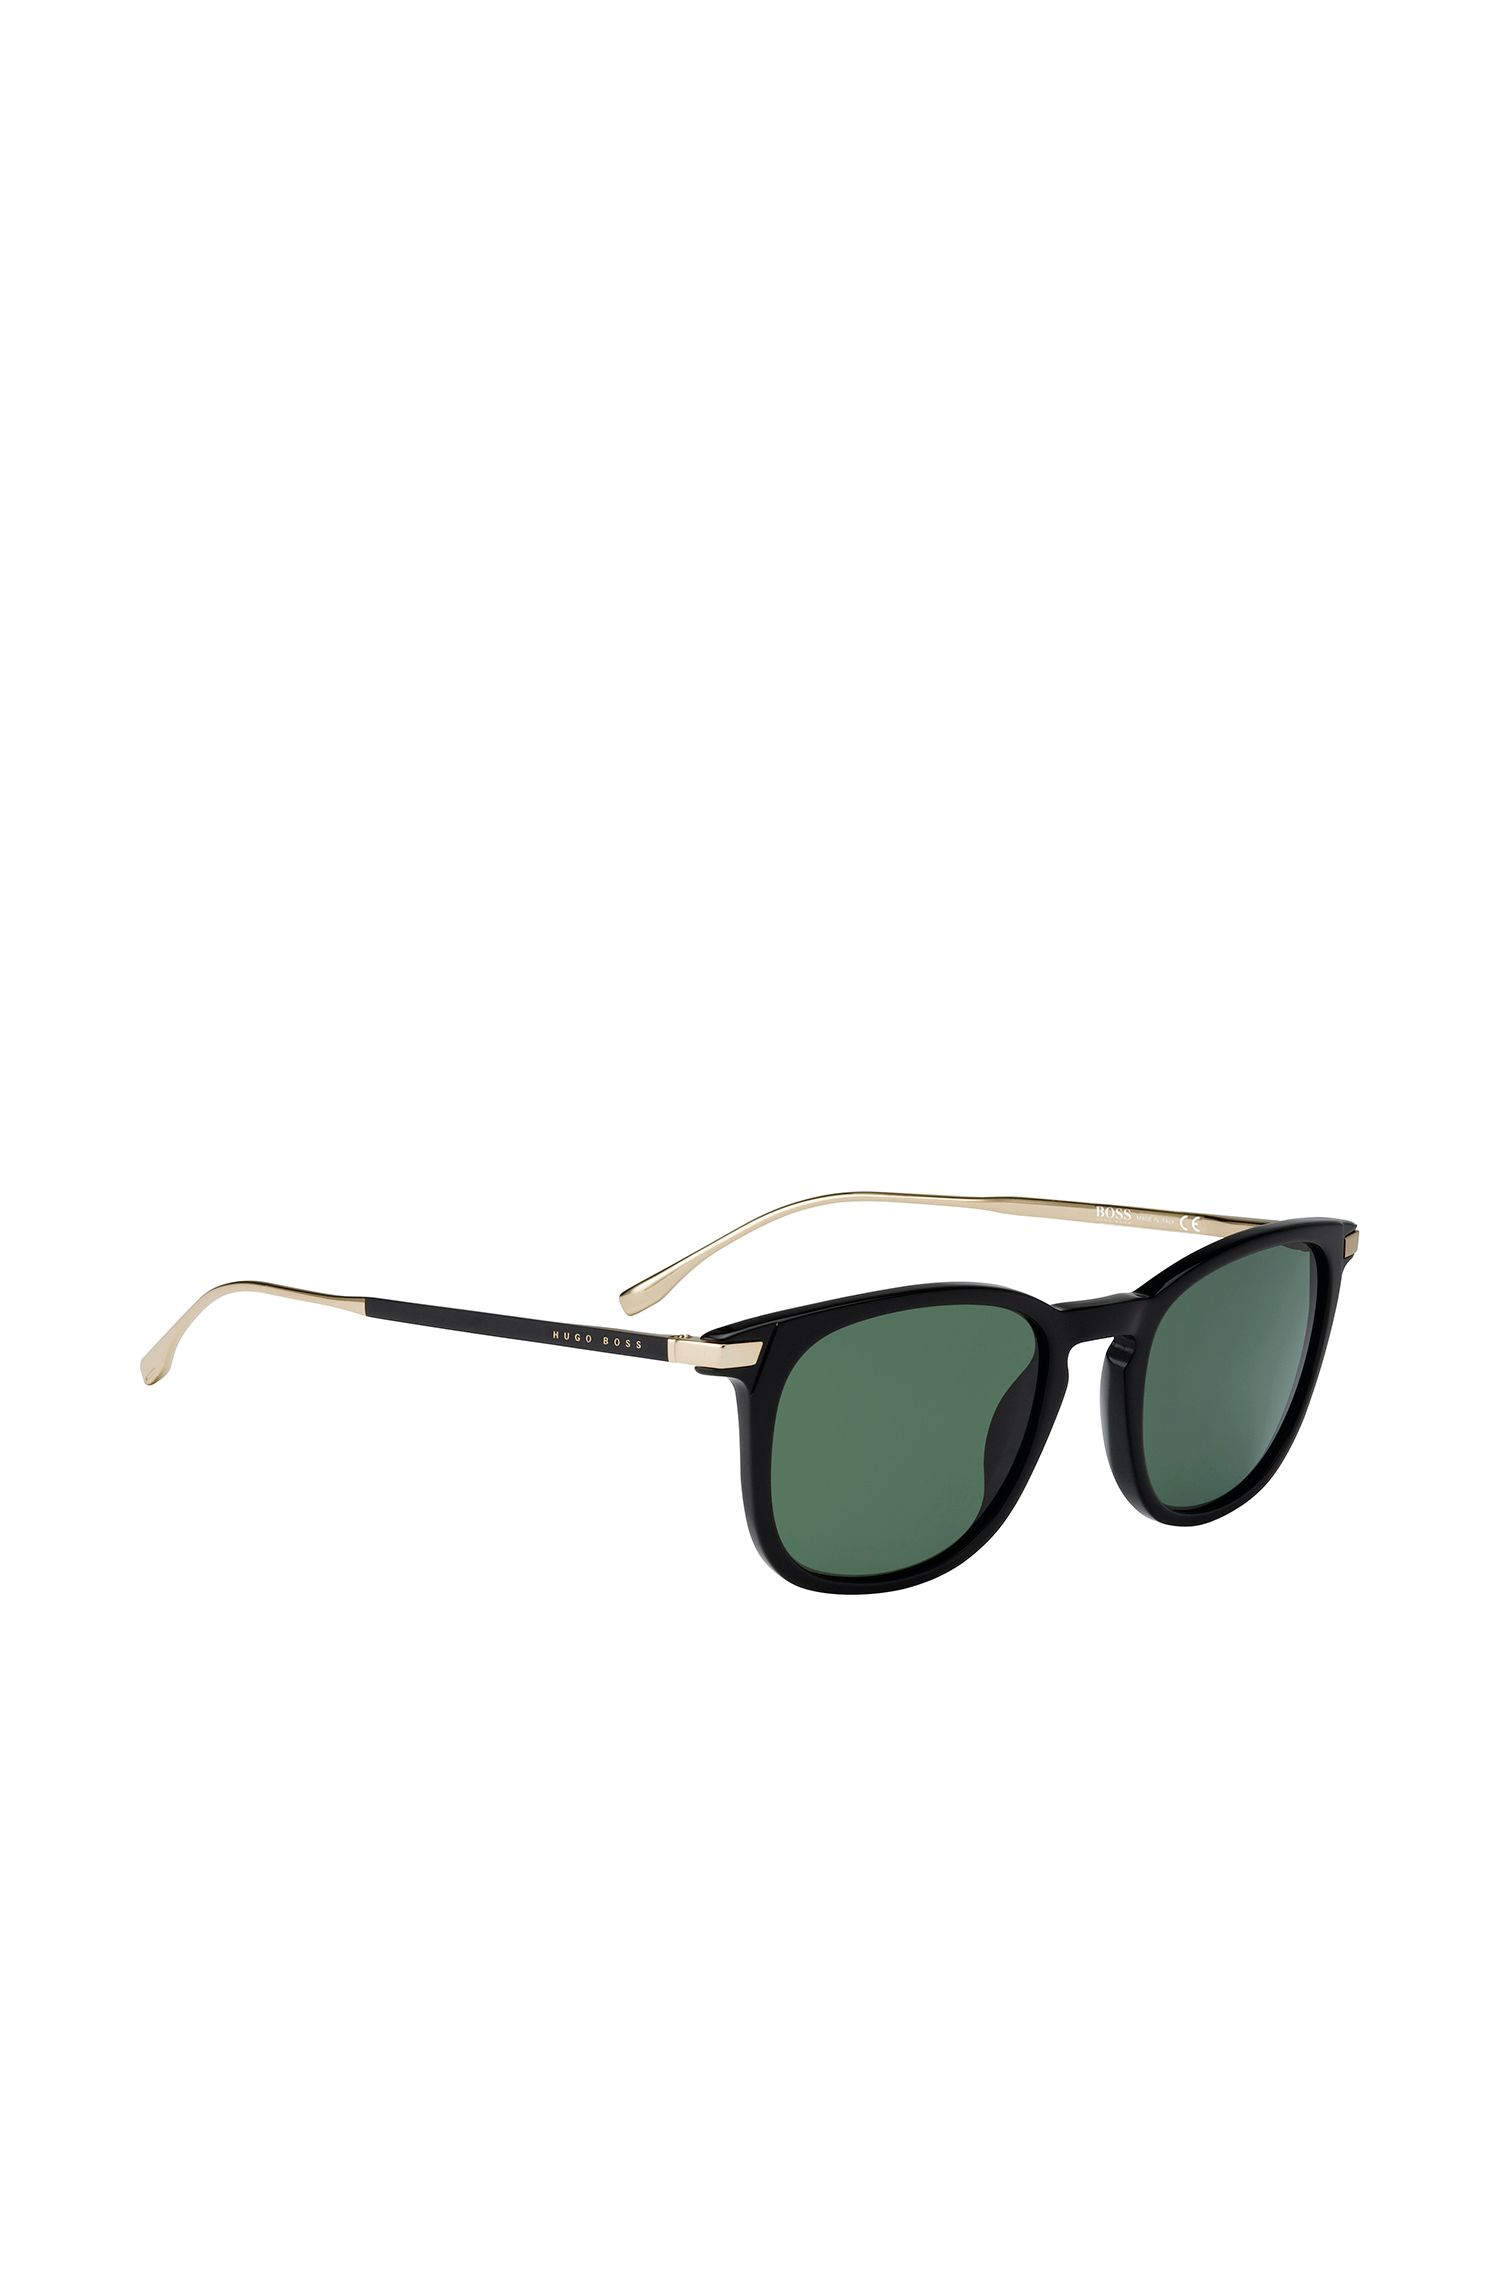 Brown Lens Acetate Sunglasses | BOSS 0783S, Assorted-Pre-Pack